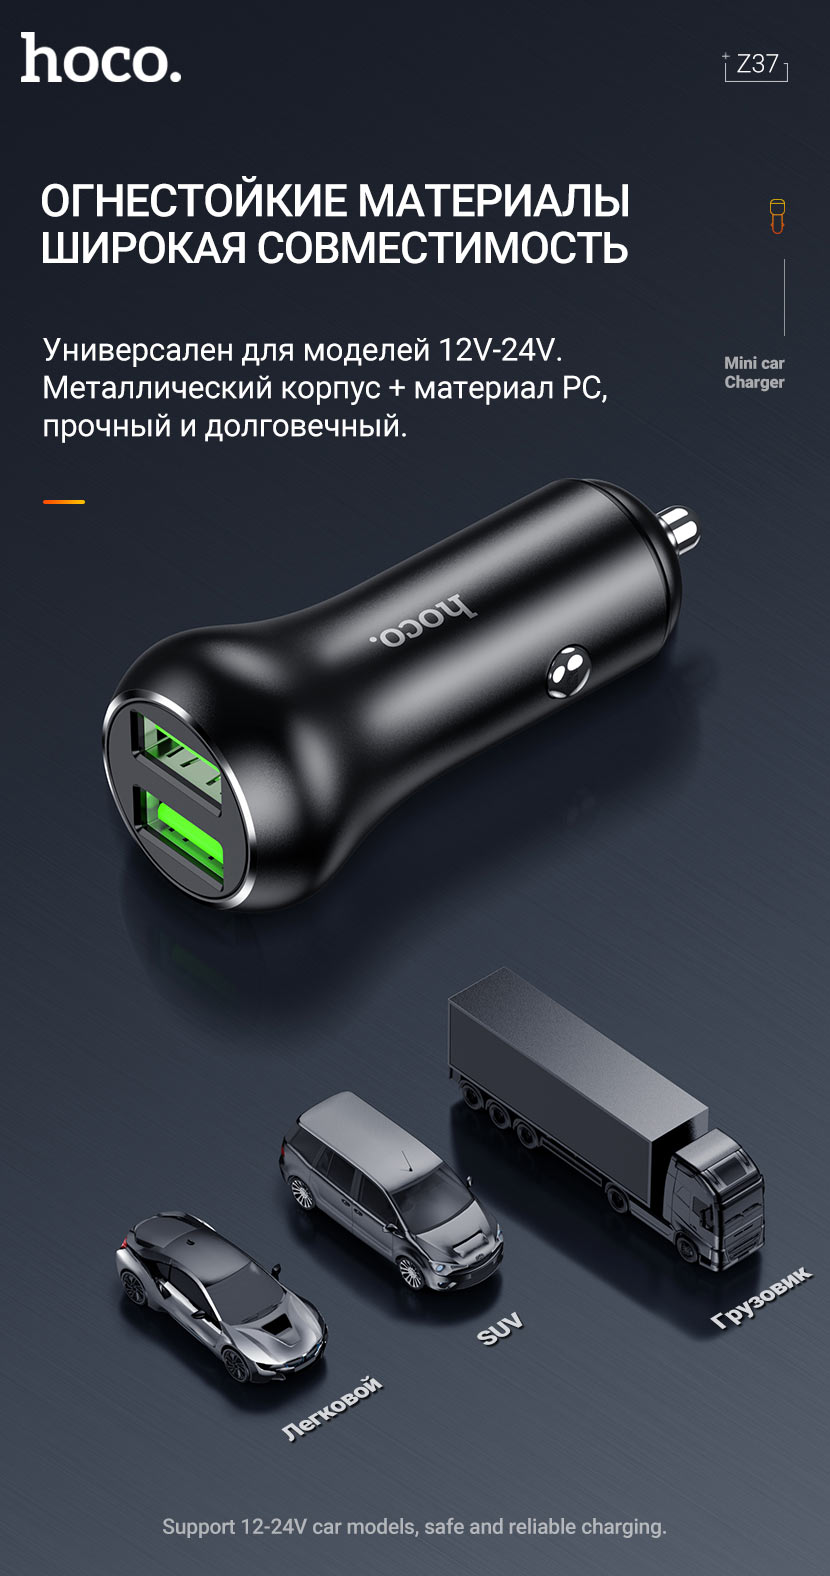 hoco news z37 sharp speed dual port qc3 car charger compatible ru